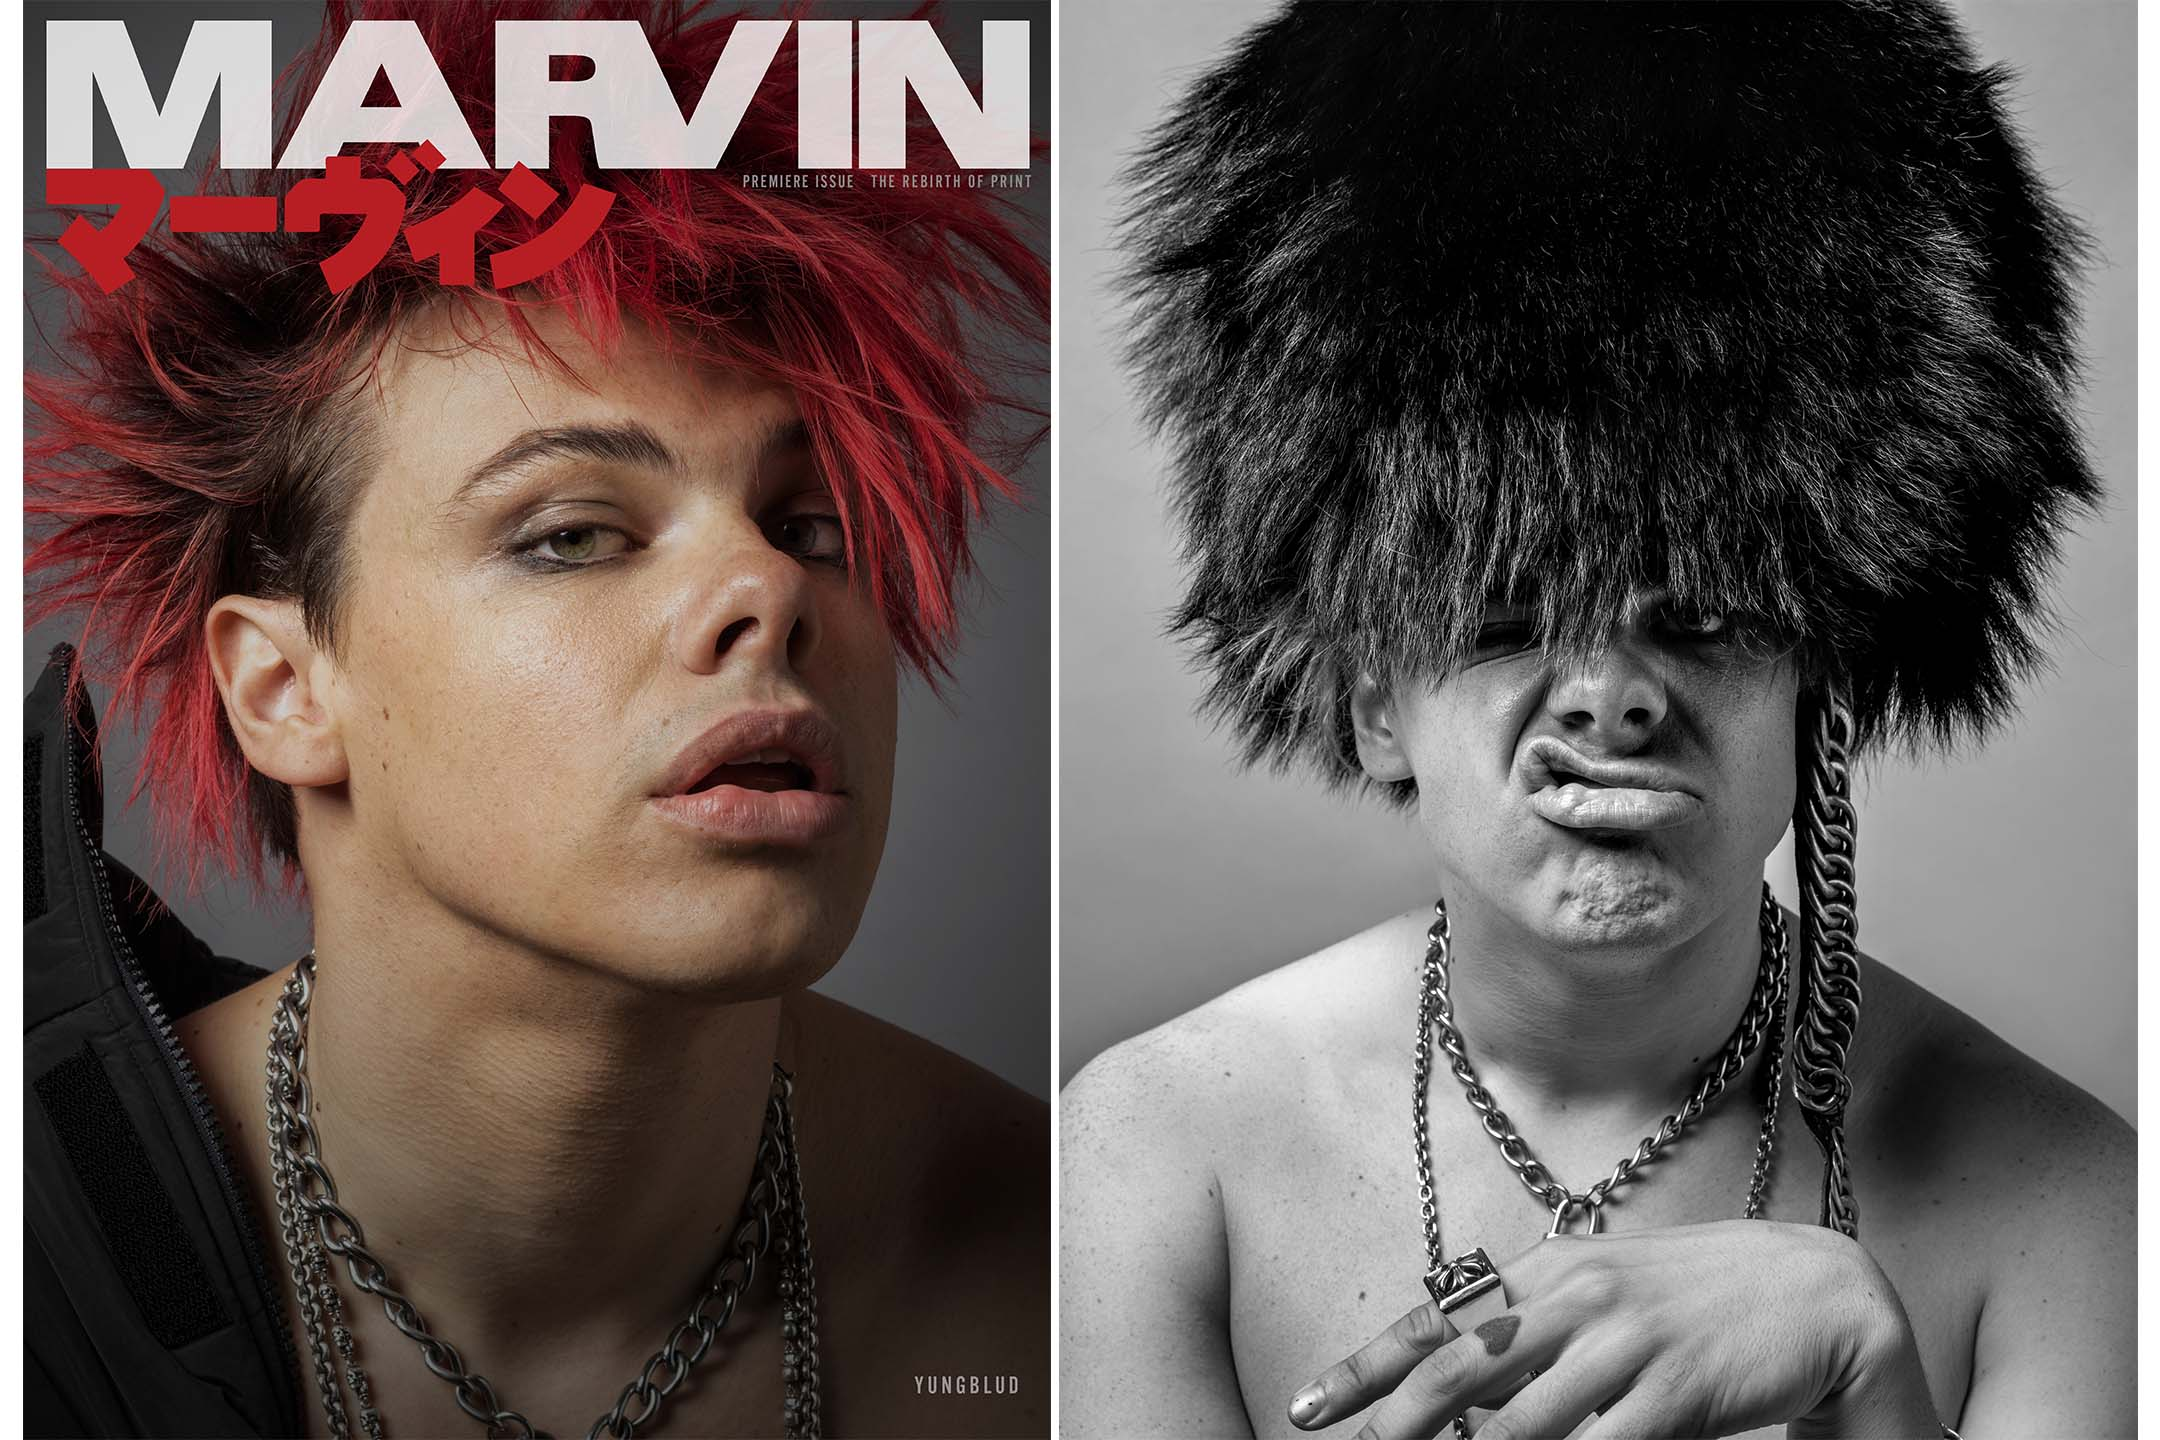 The premier issue of Marvin with cover star Yung Blud.